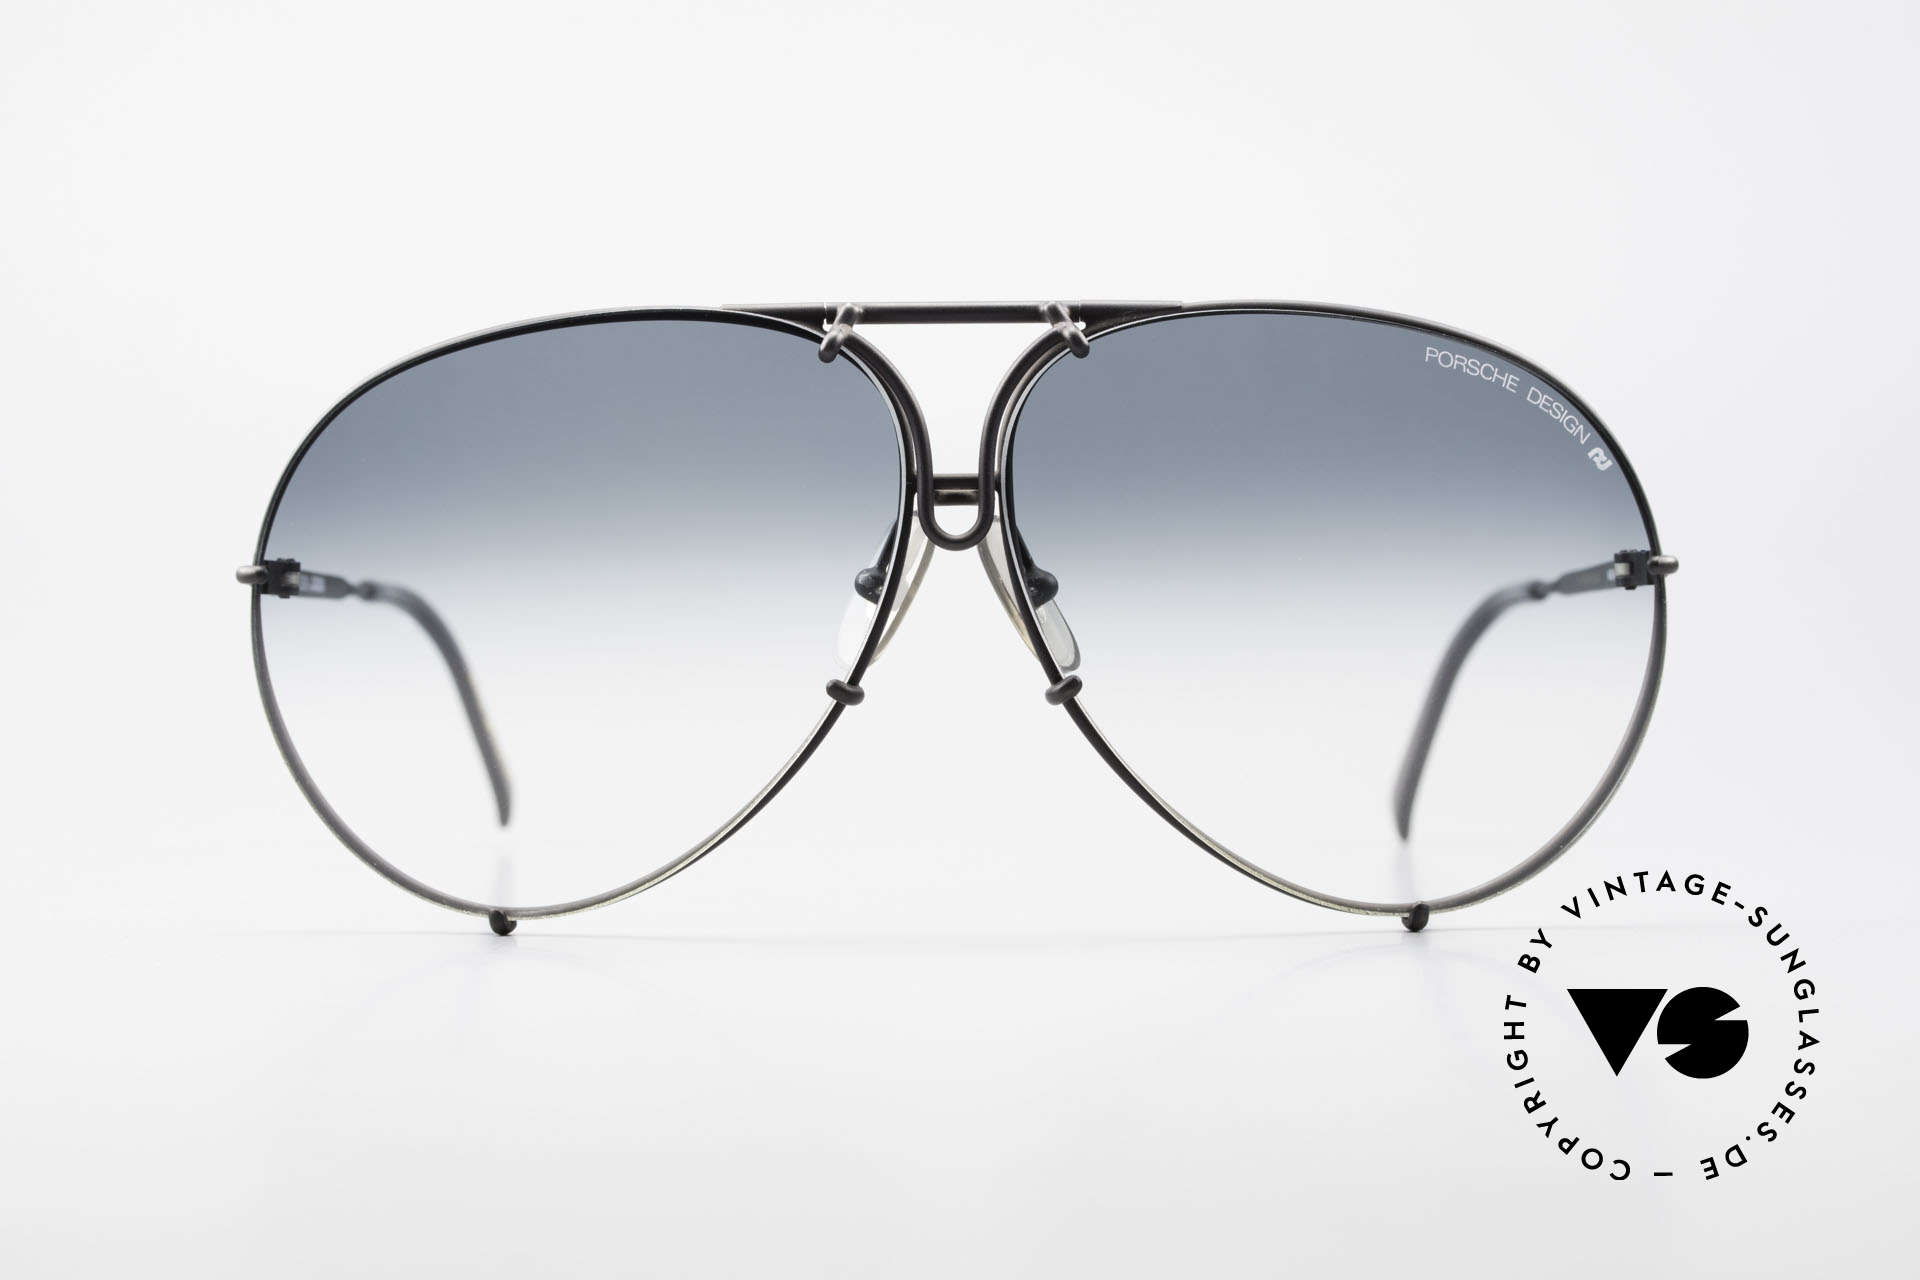 Porsche 5621 Rare 80's Aviator Sunglasses, a true 80's sunglass' classic for men in dulled black, Made for Men